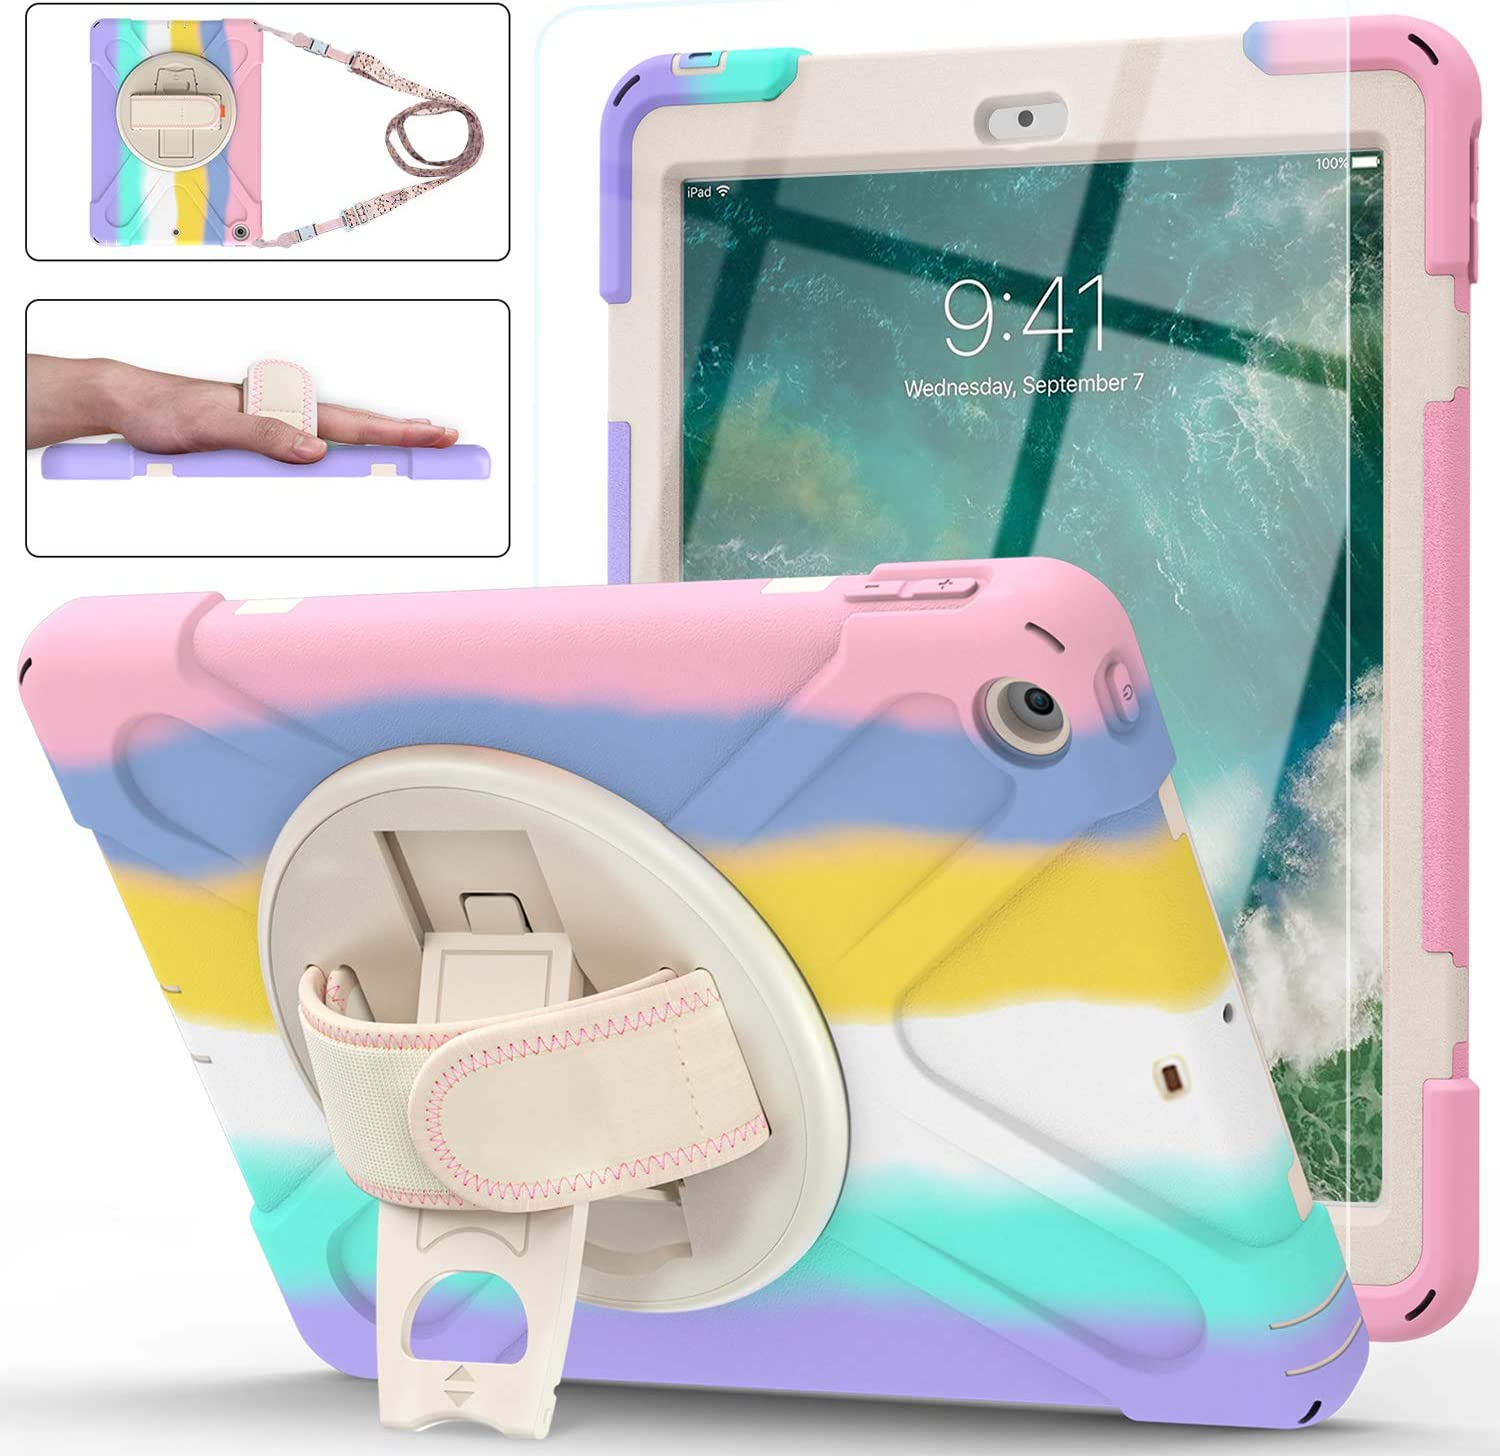 iPad 6th/5th Generation Case, New iPad 9.7 Case 2017/2018, [Kid Proof] Ambison Full Body Protective Case with Tempered Glass Screen Protector, Pencil Holder, Shoulder Strap, Hand Strap (Light Rainbow)